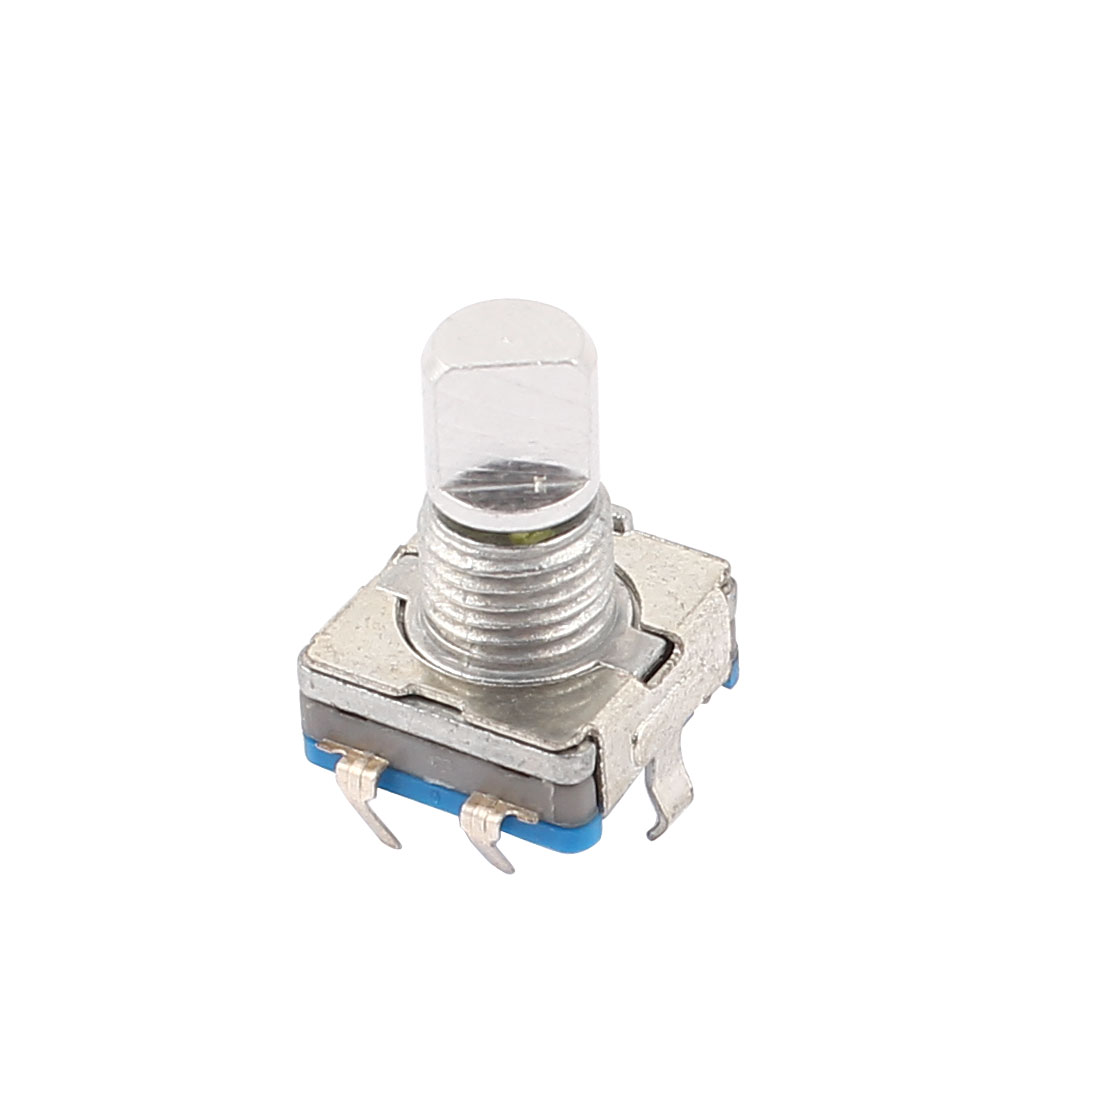 5Pins 20 Detent Points 360 Degree 6mm Shaft Push Button Rotary Encoder Switch